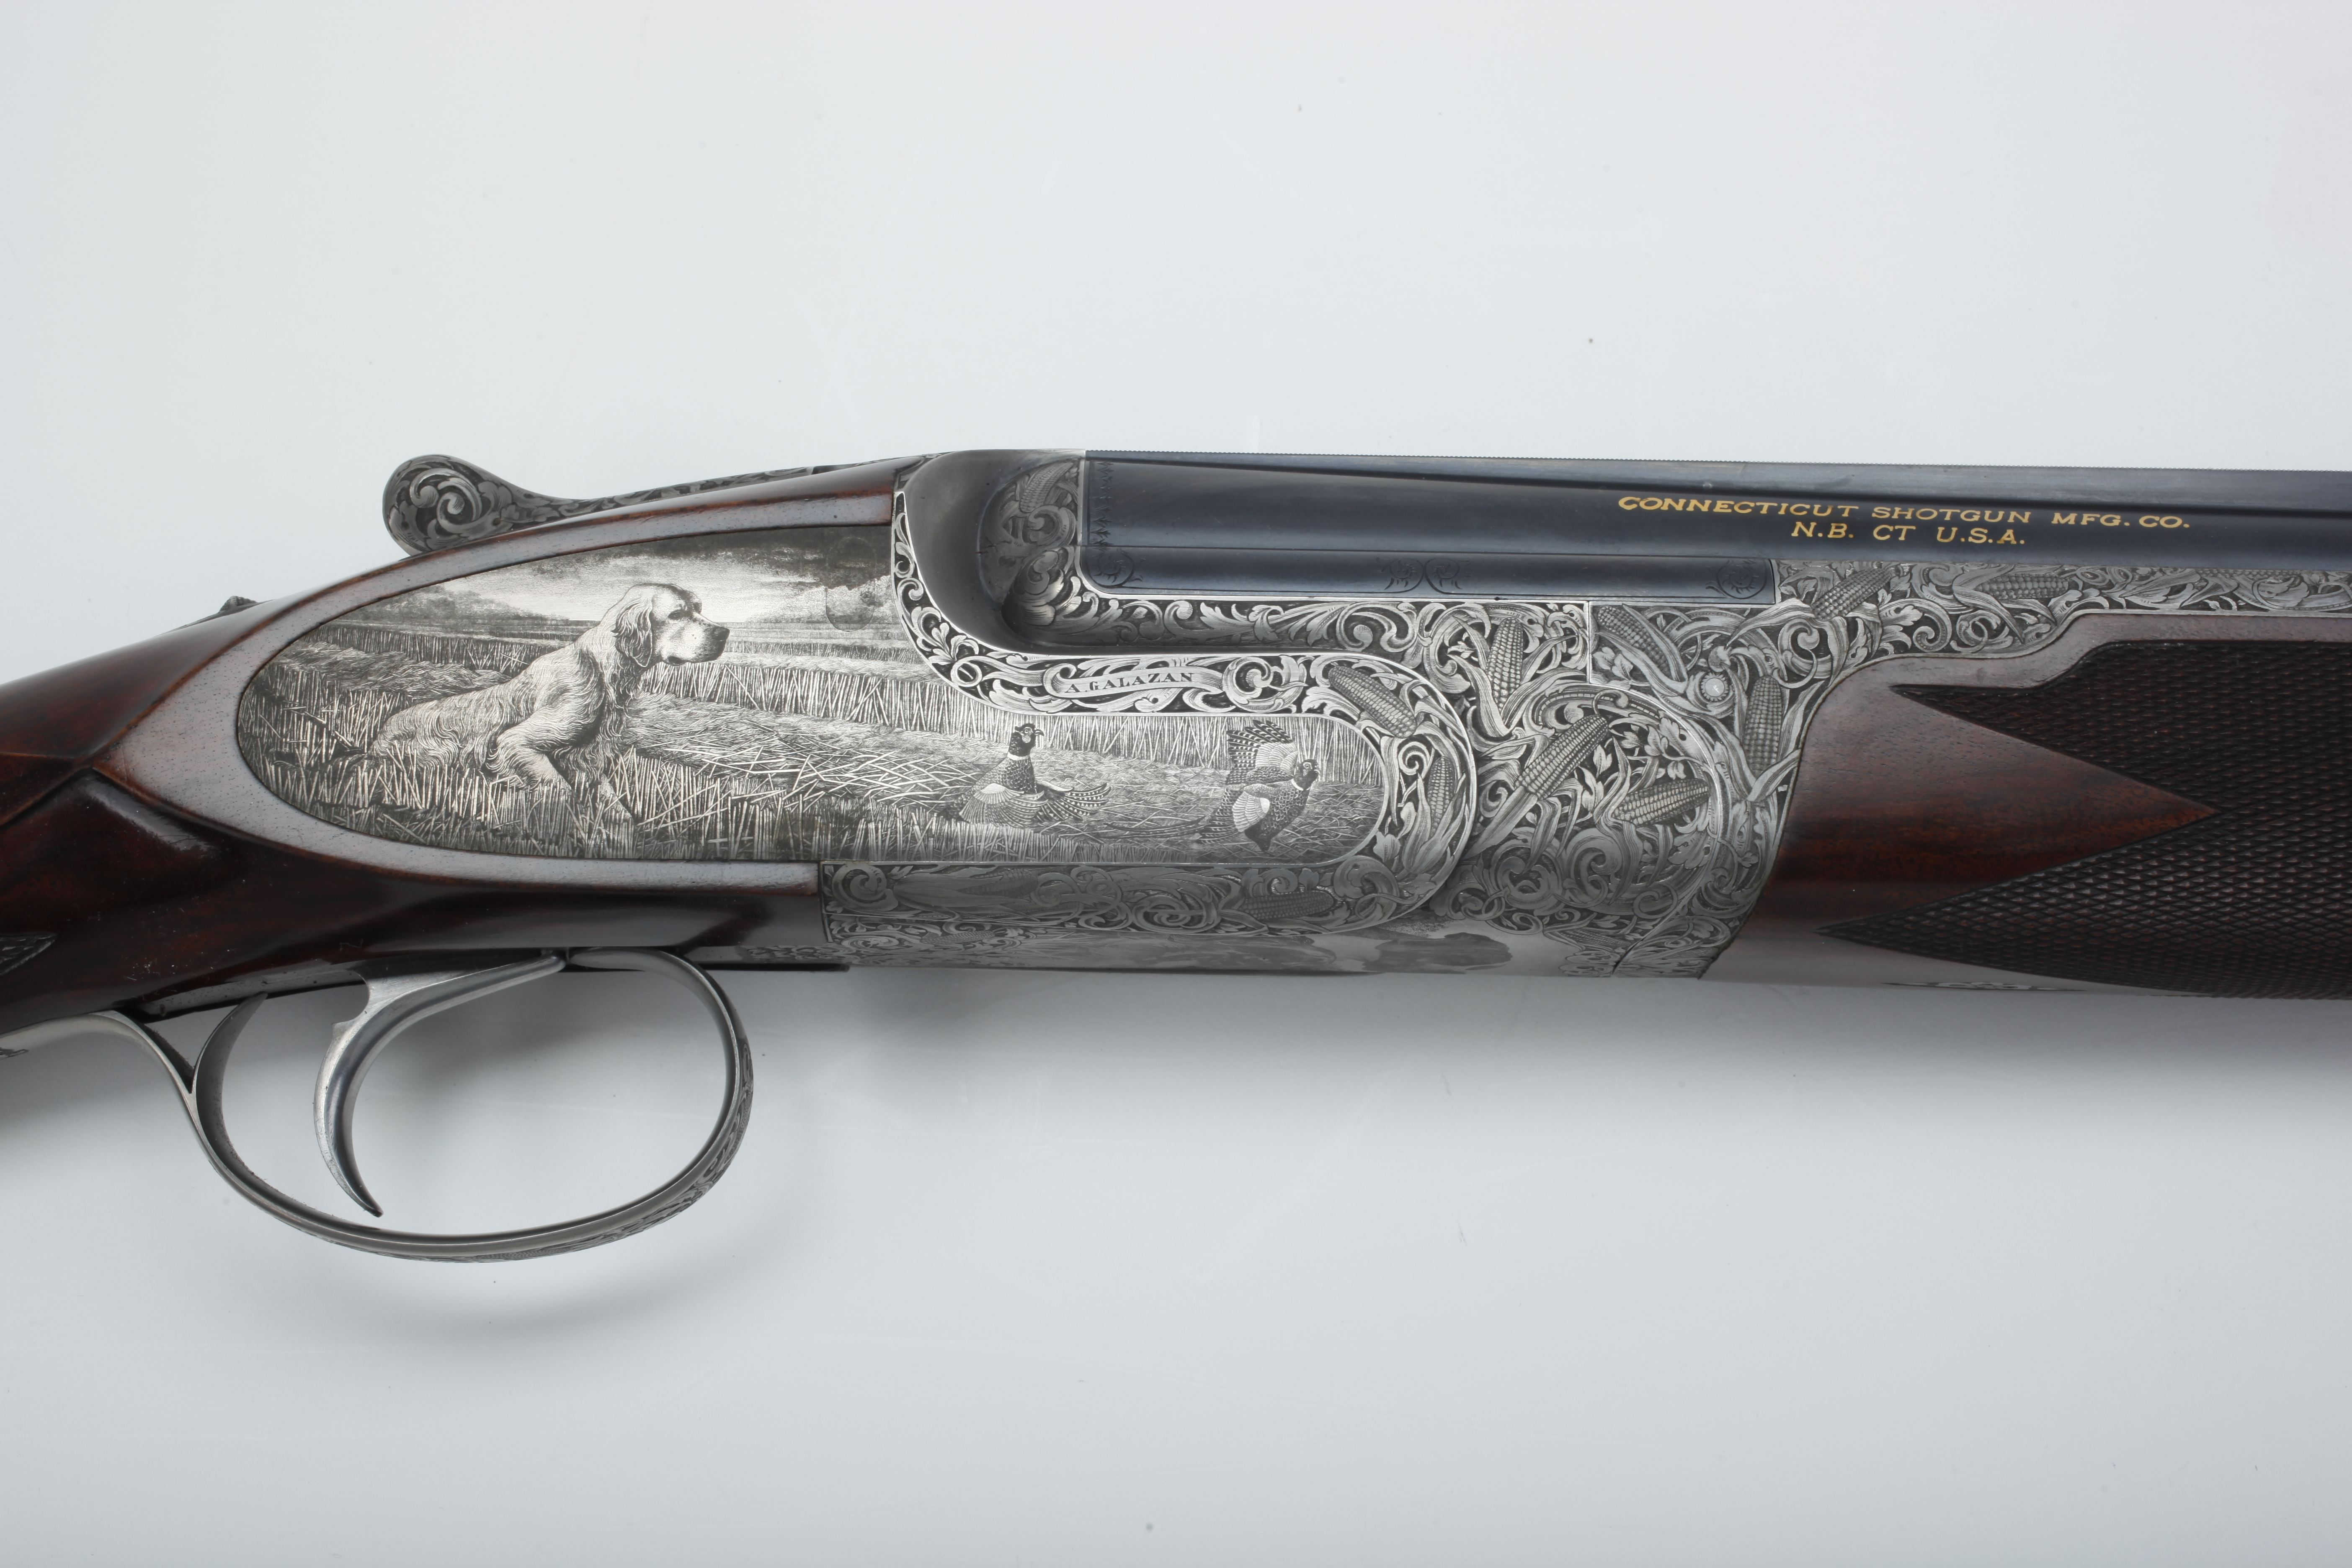 Galazan Engraved Over-Under Shotgun - 20 ga.